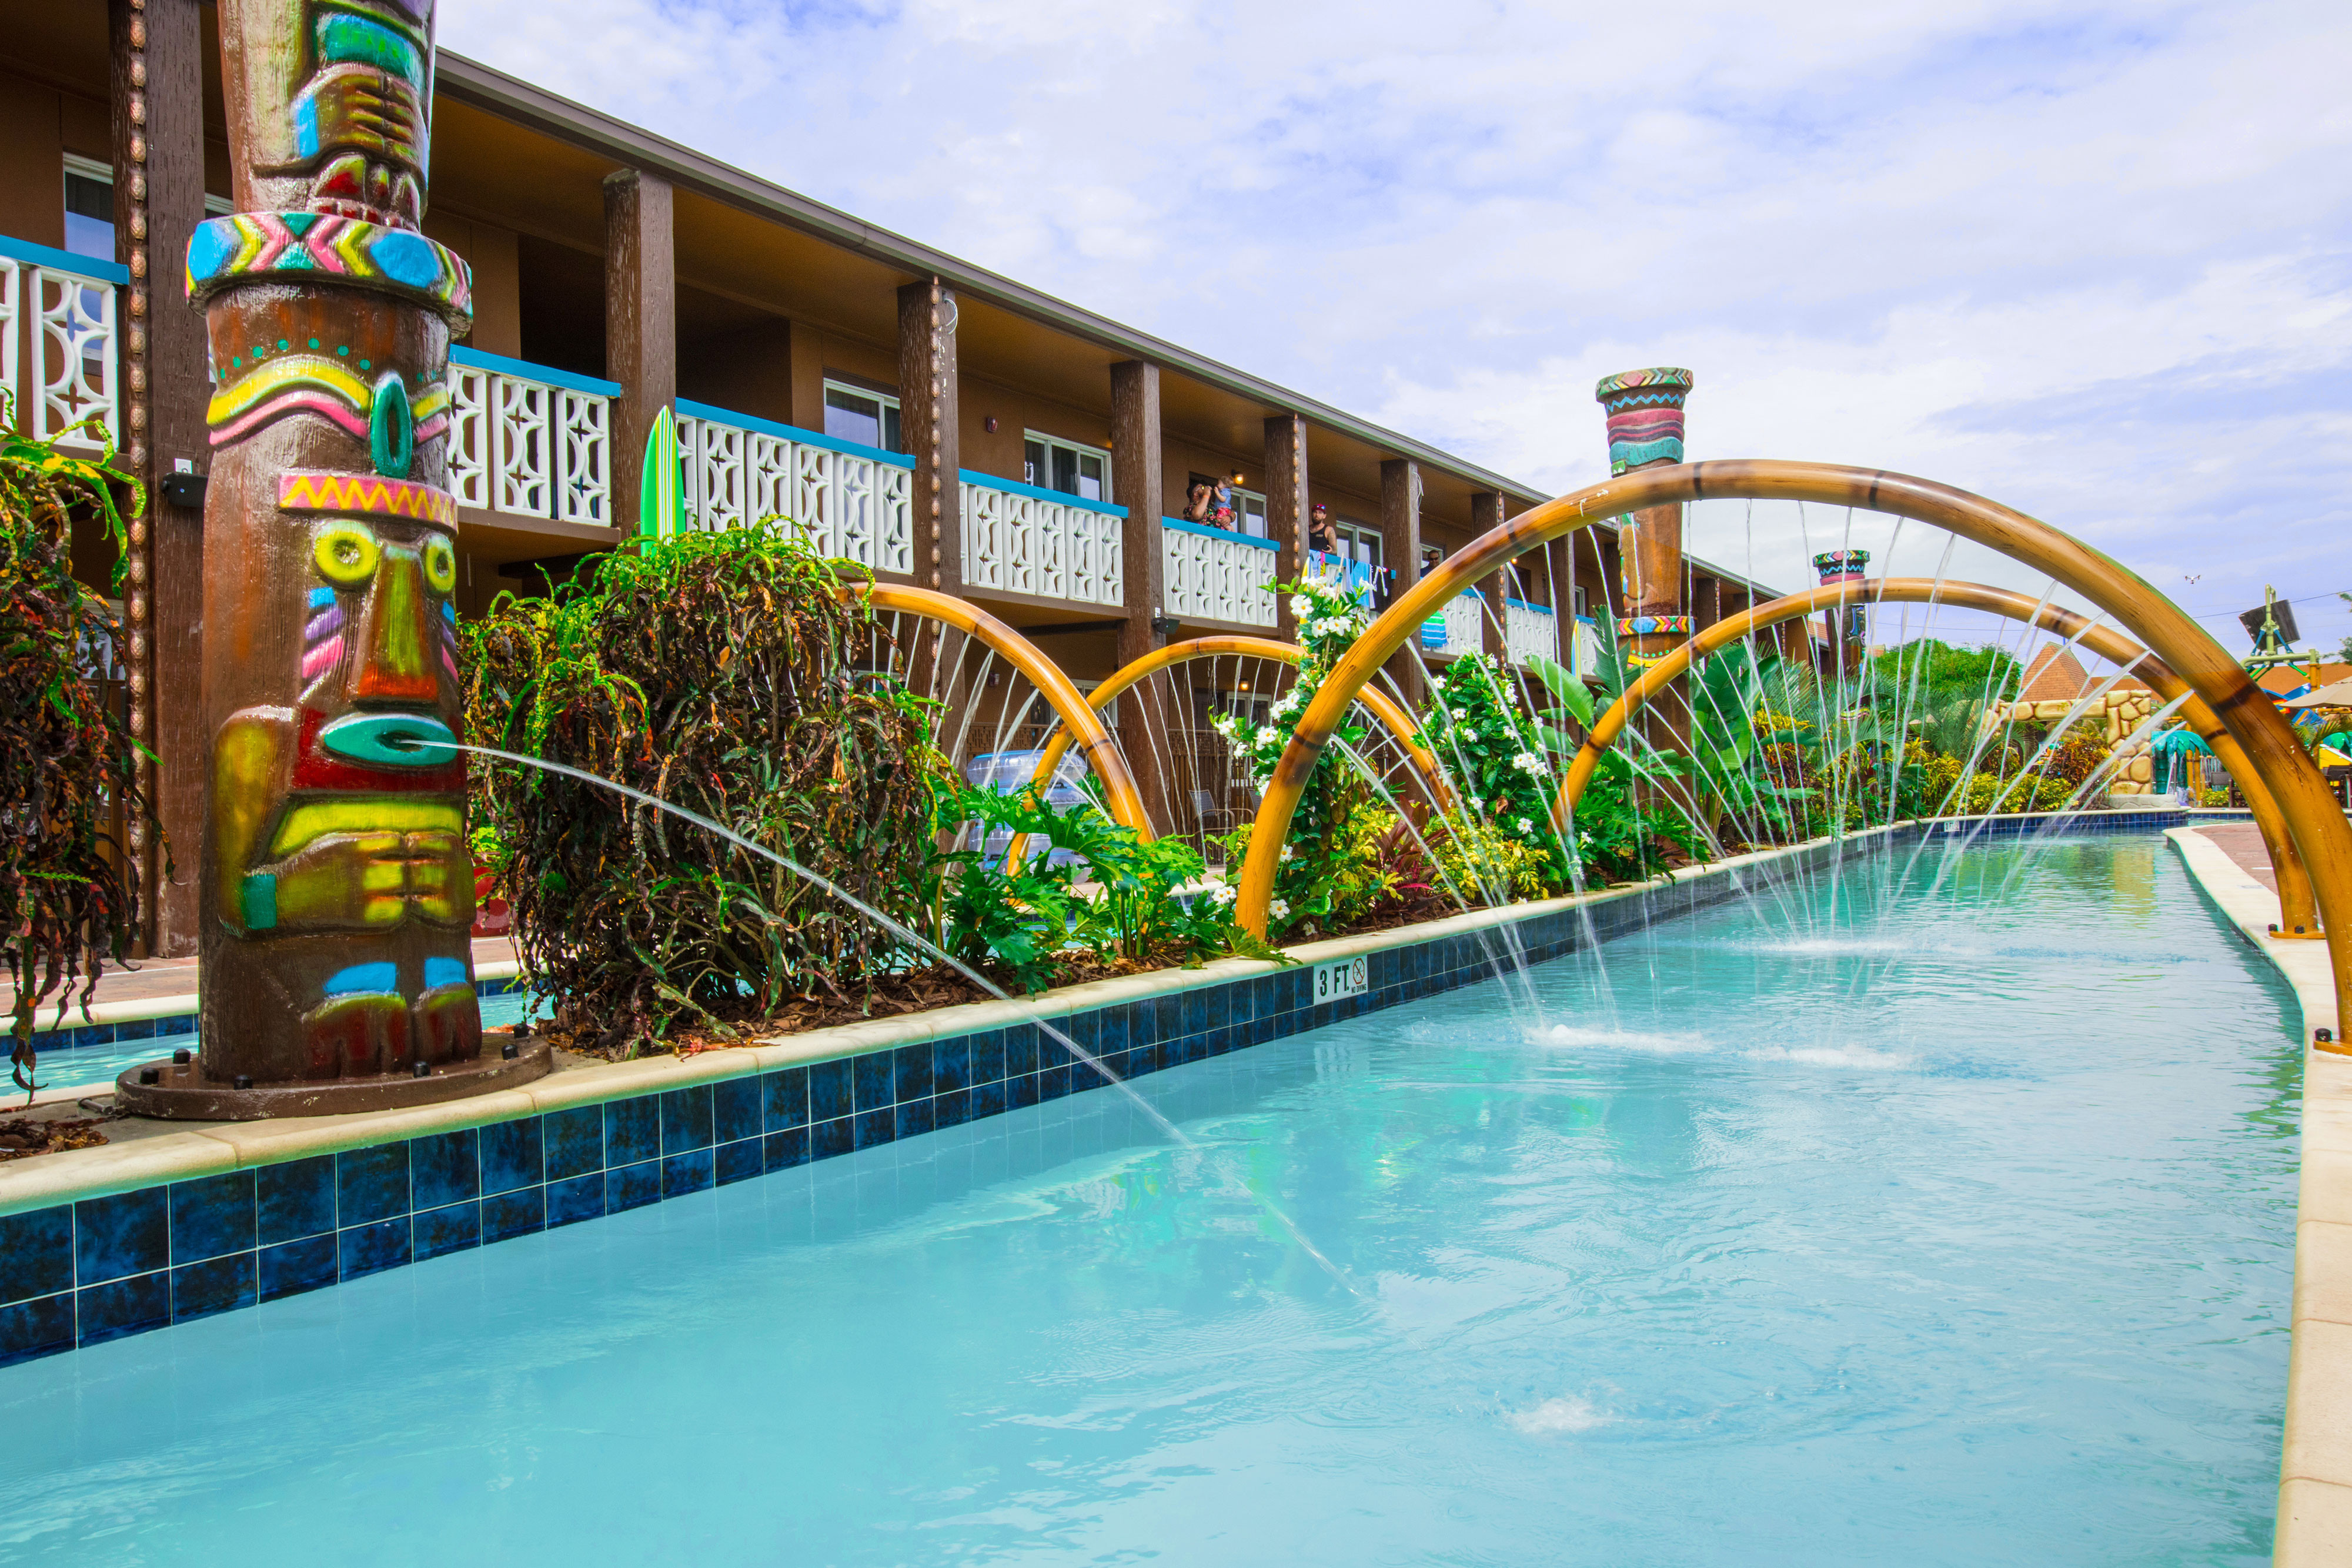 Looking for a Cocoa Beach water park hotel in Cocoa Beach, FL? Discover Westgate Cocoa Beach Resort and our brand new Cocoa Beach water park featuring a Splash Pad, Lazy River and Heated Pool for wet fun in the sun at our Cocoa Beach Water Park hotel